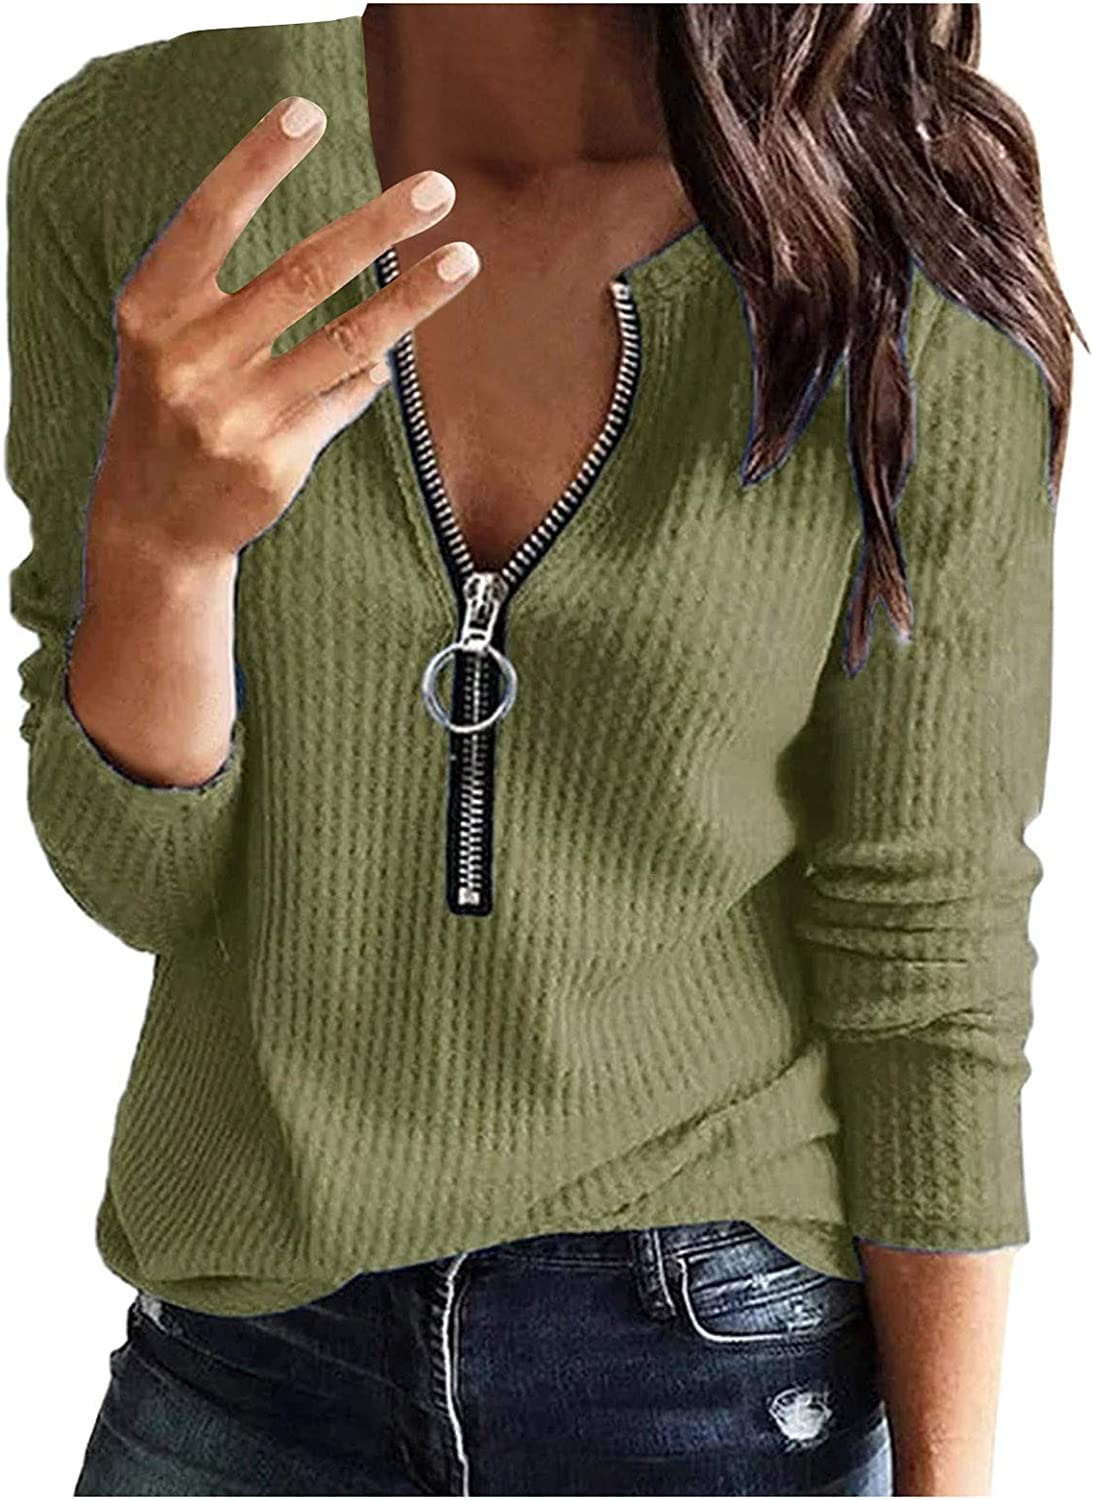 Eoailr Tops for Women, Womens Long Sleeve Tshirt V Neck Loose Fit Soft Waffle Knit Thermal Tops Loose Fitting Warm Tee